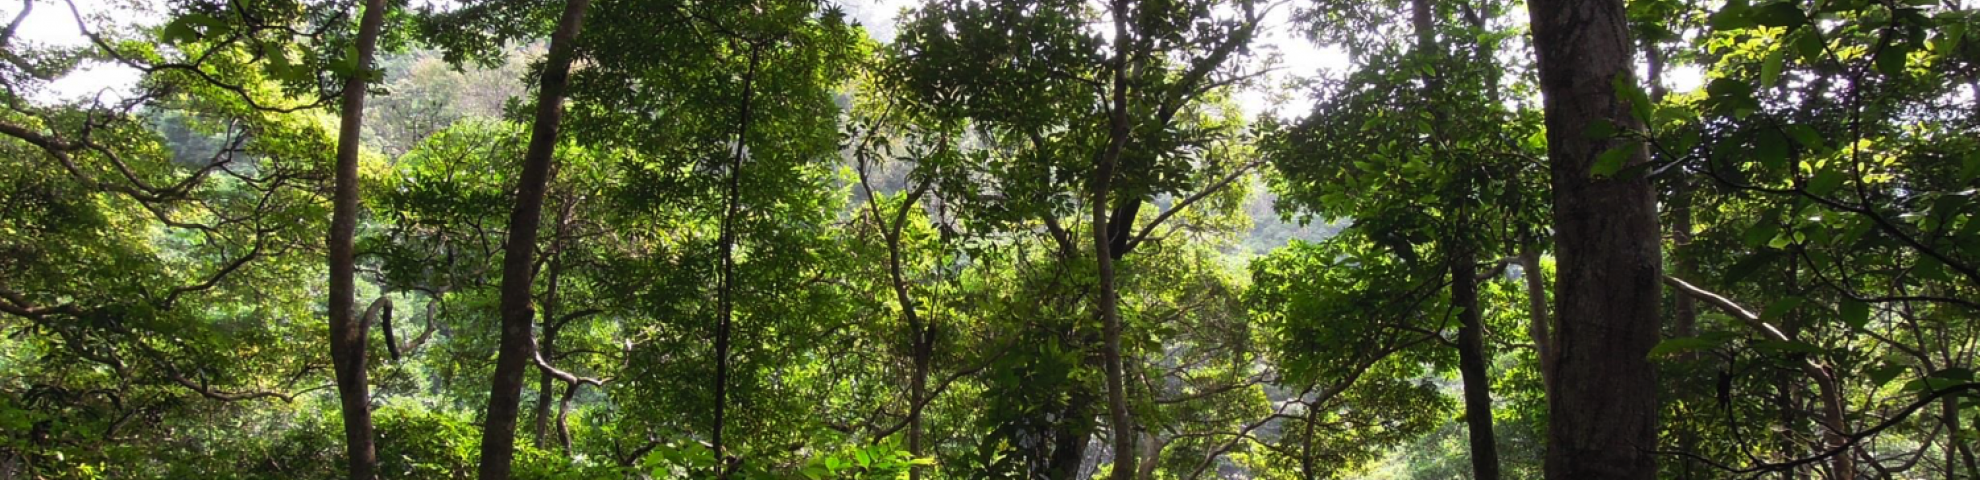 hong kong forest in China